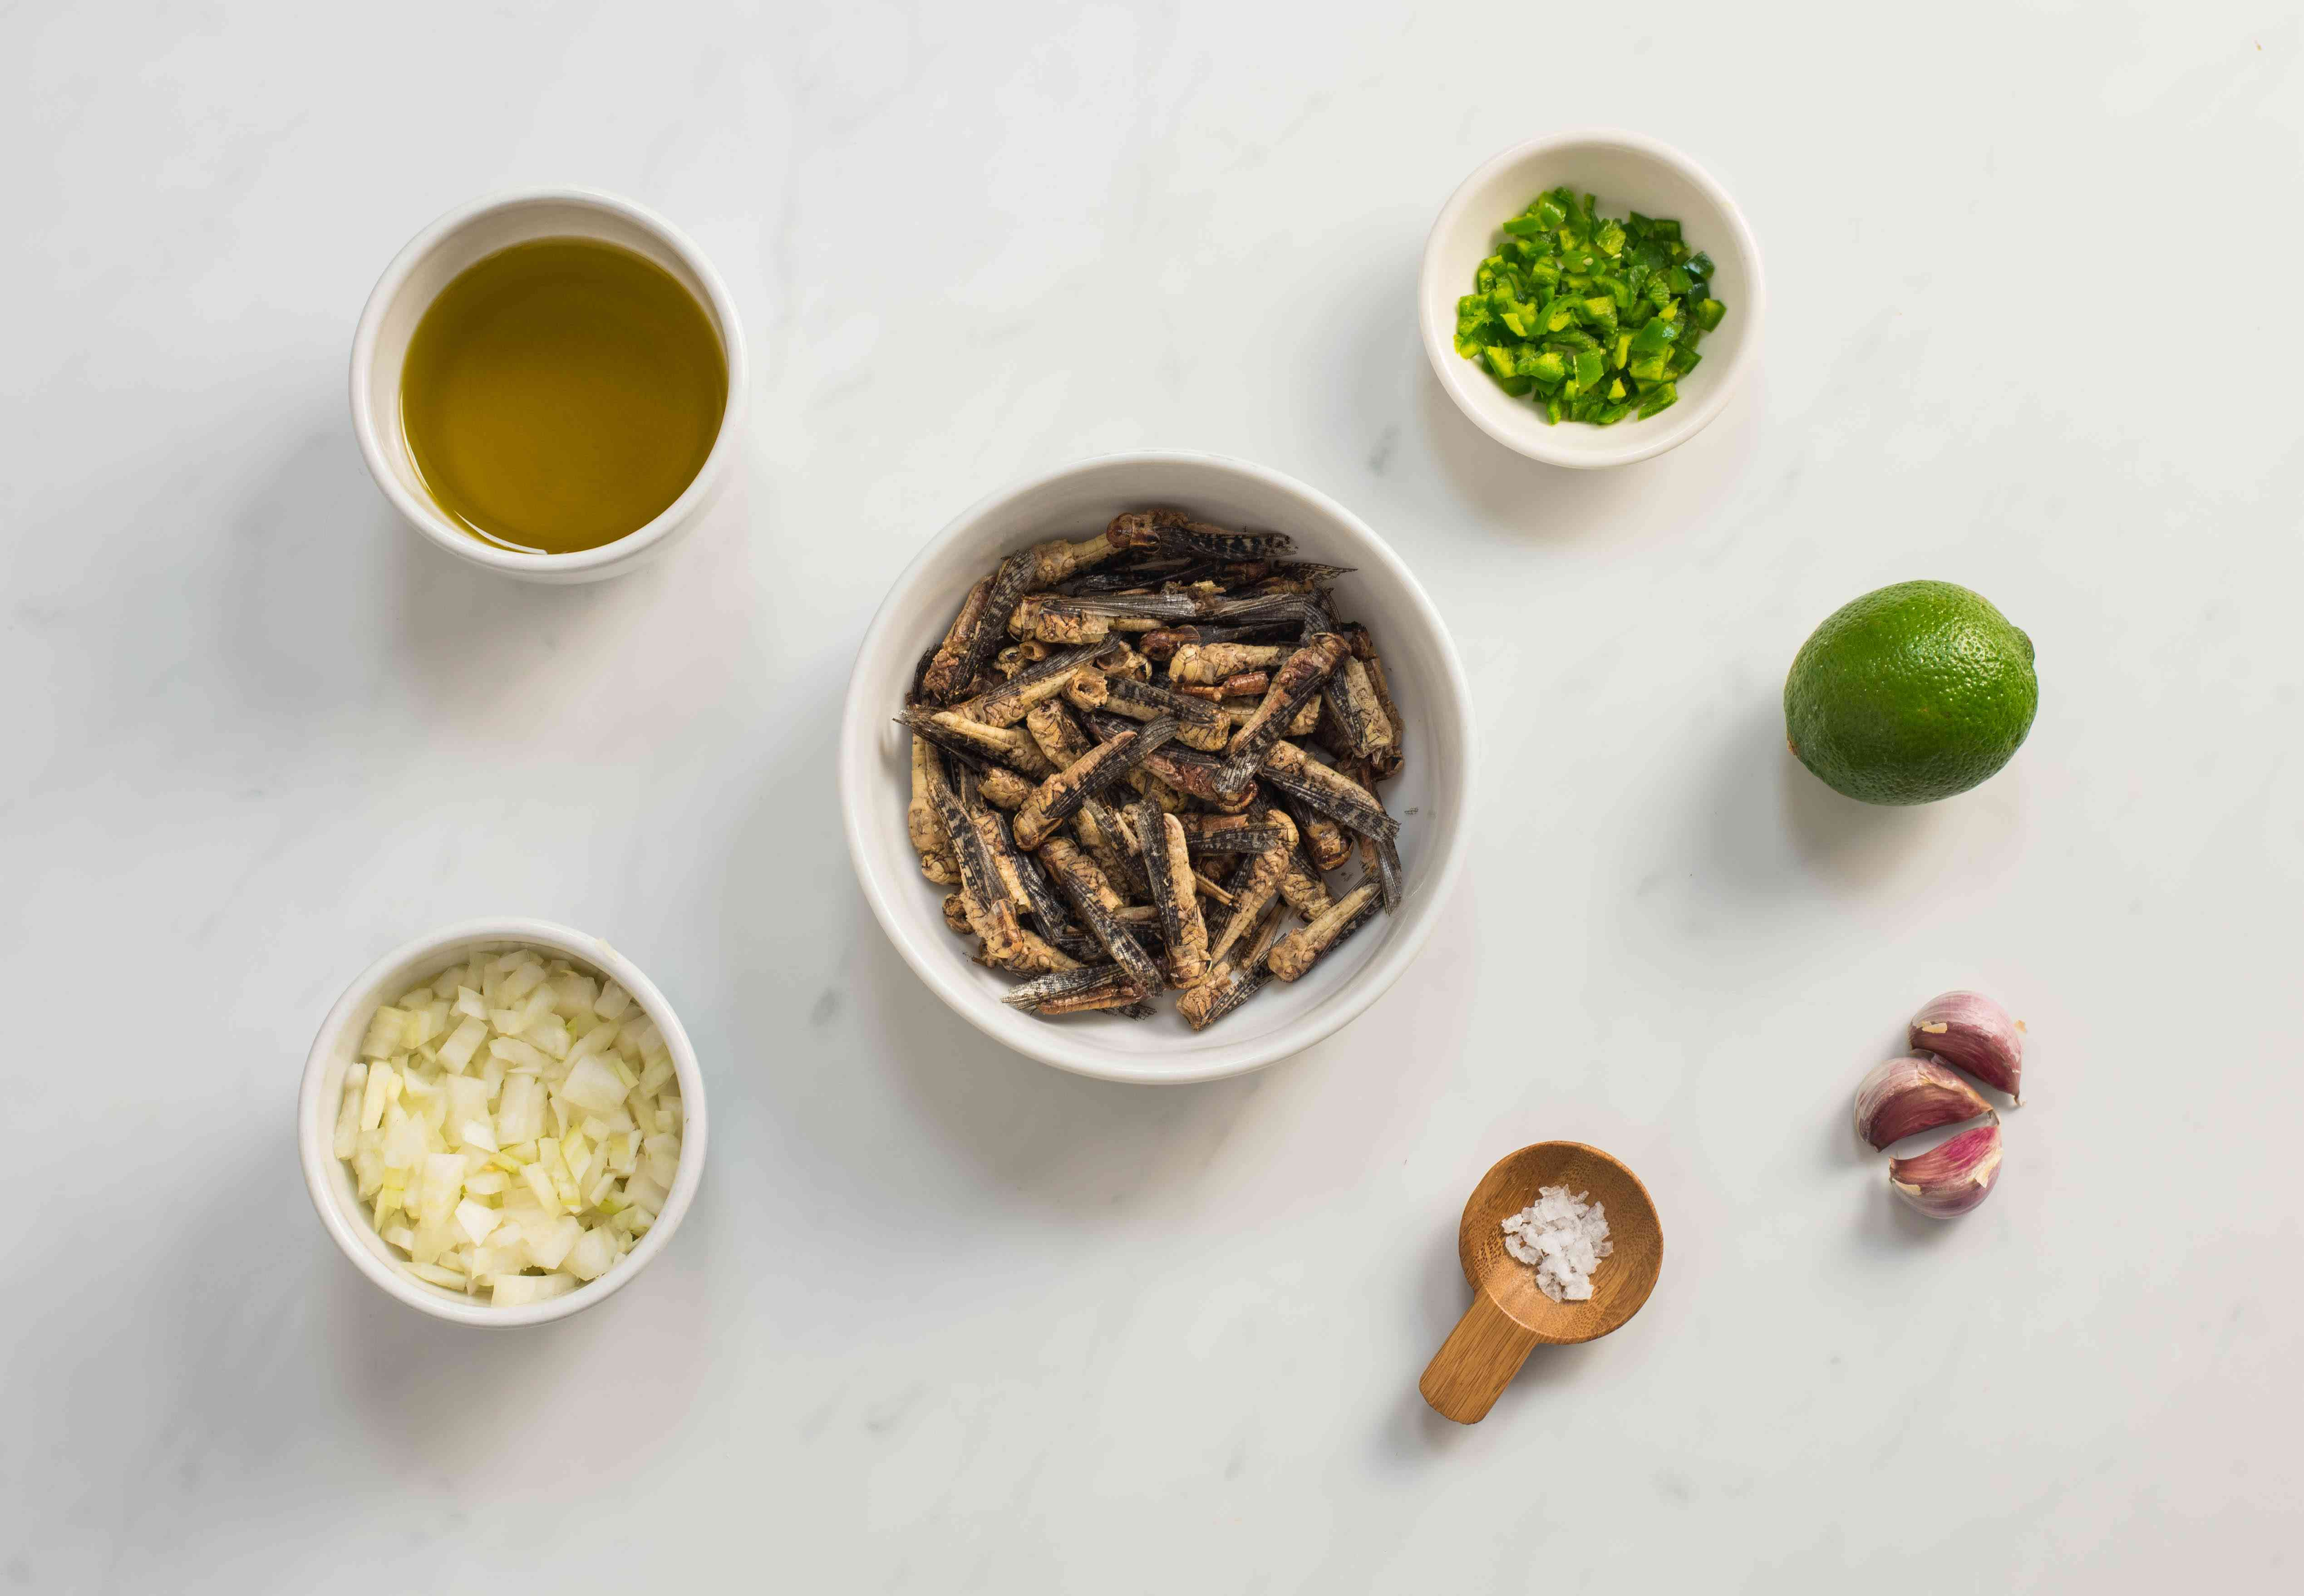 Ingredients for chapulines Mexican grasshoppers